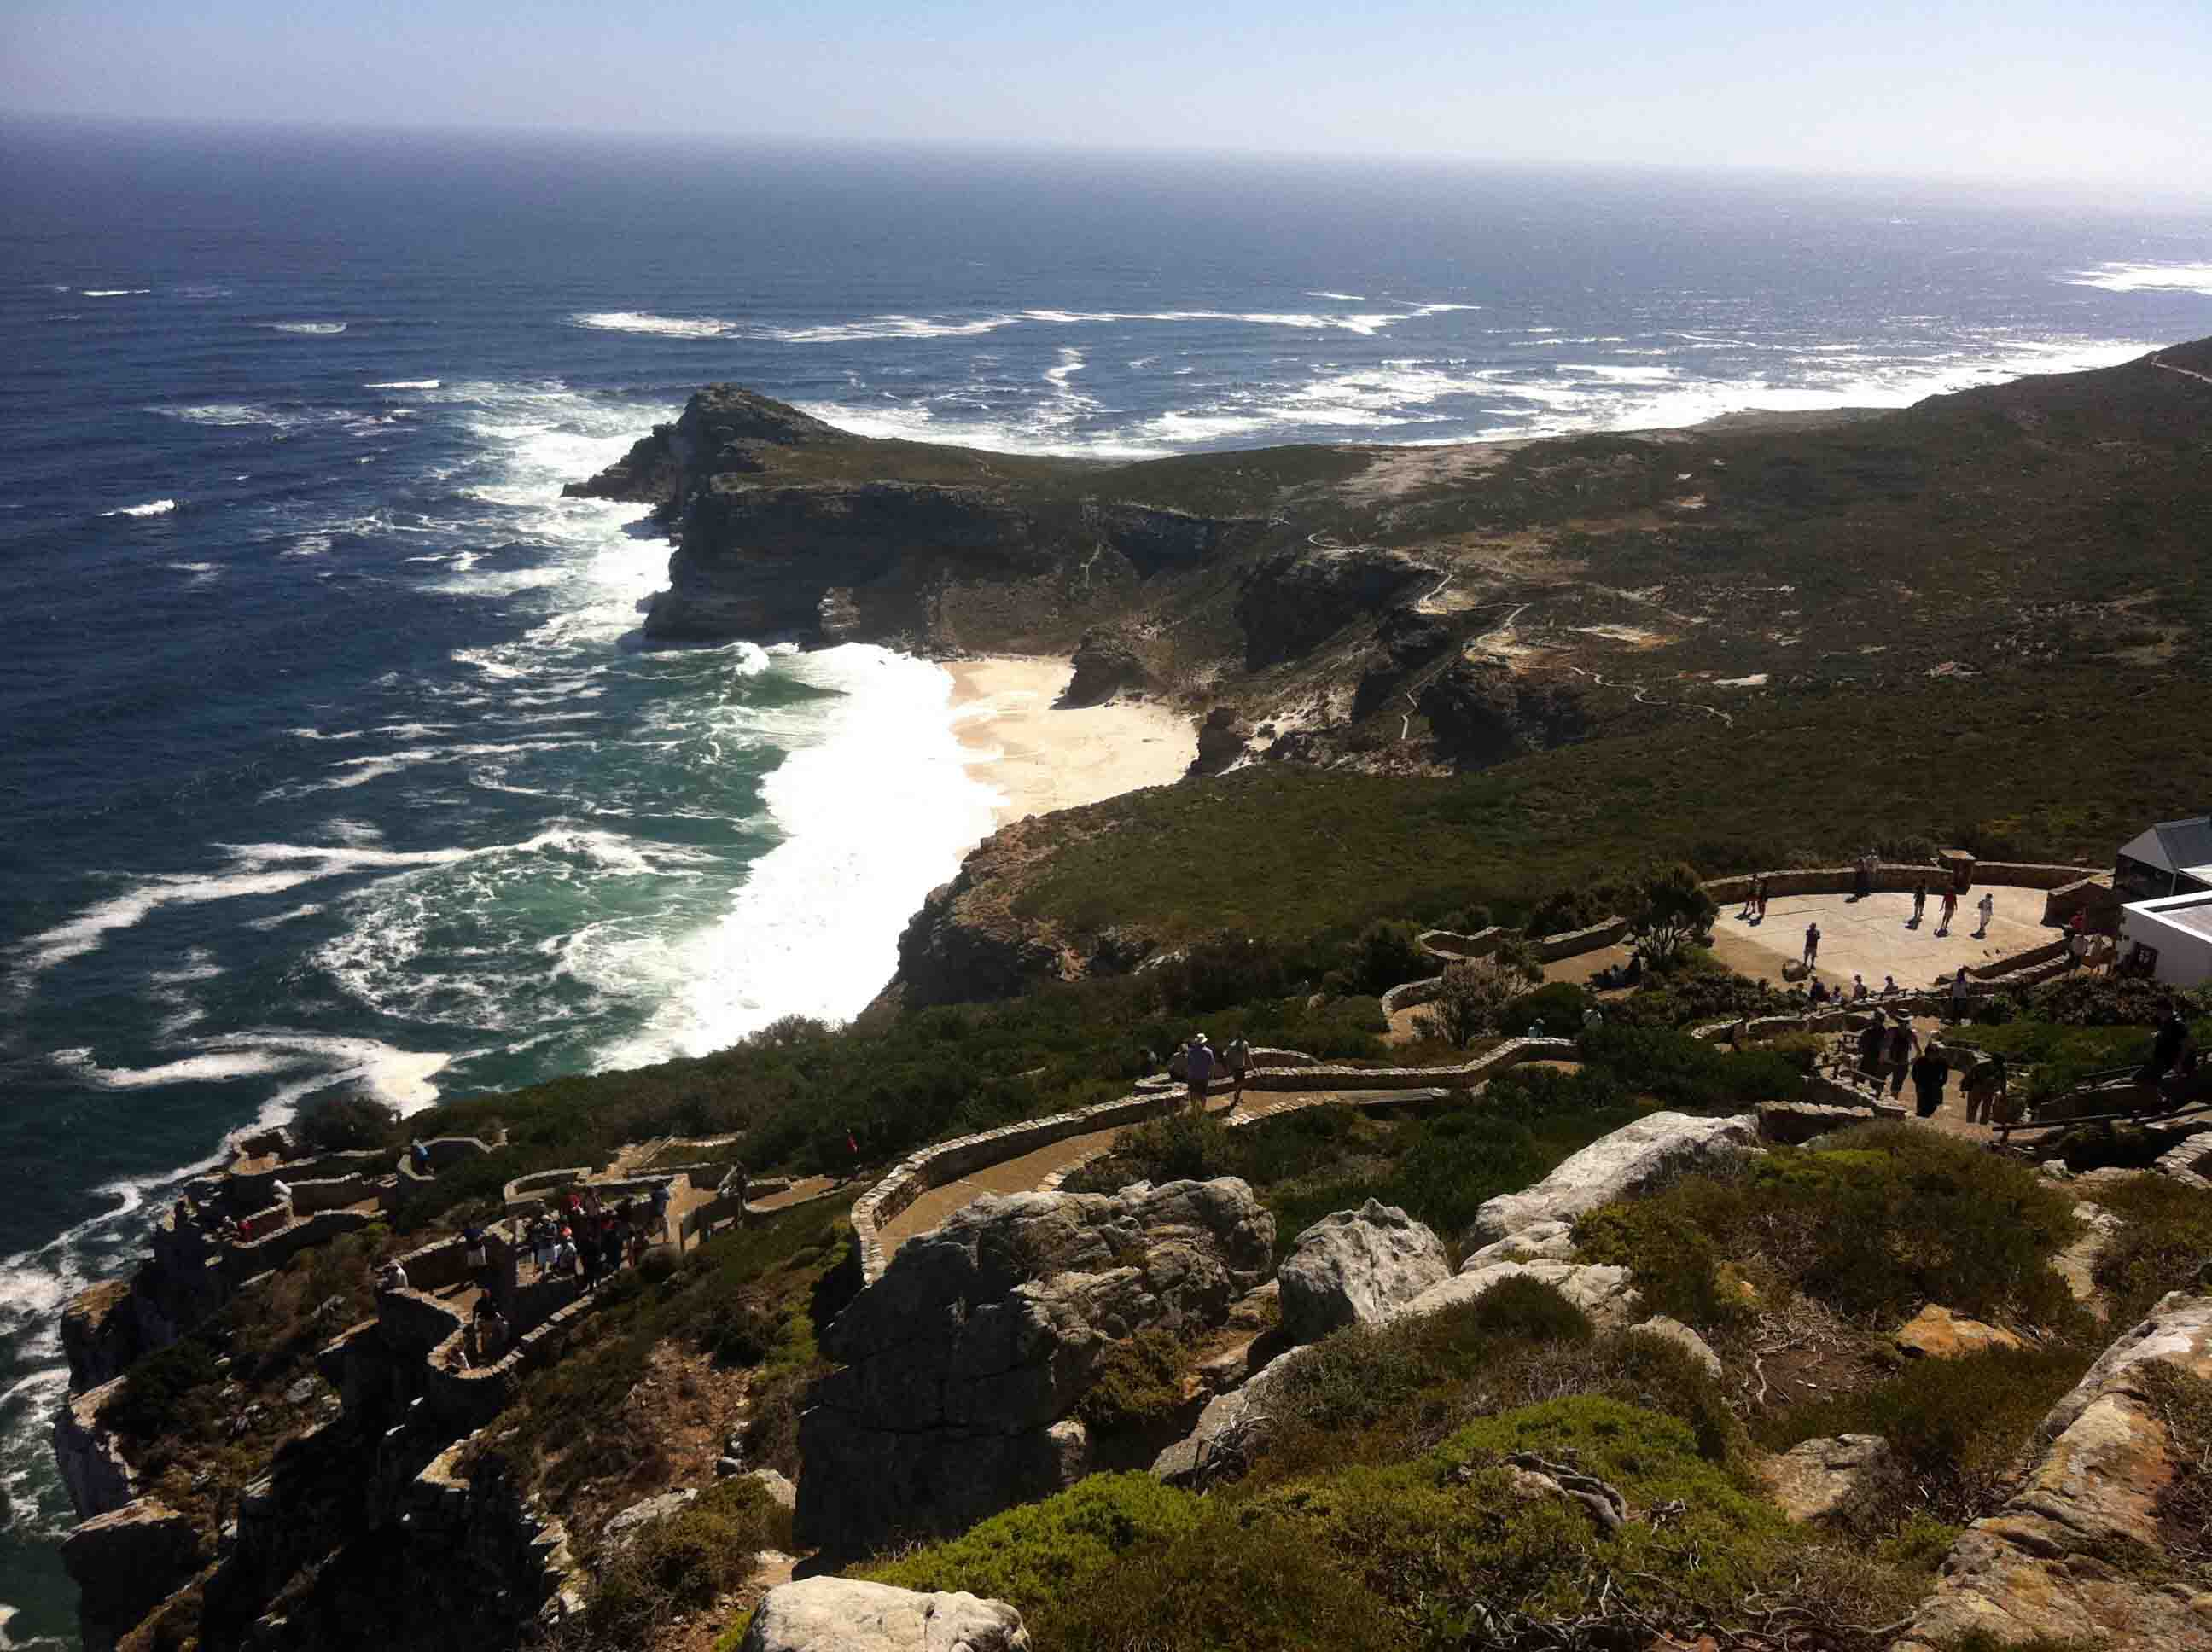 Photos From a Day Tour of Cape Town, South Africa